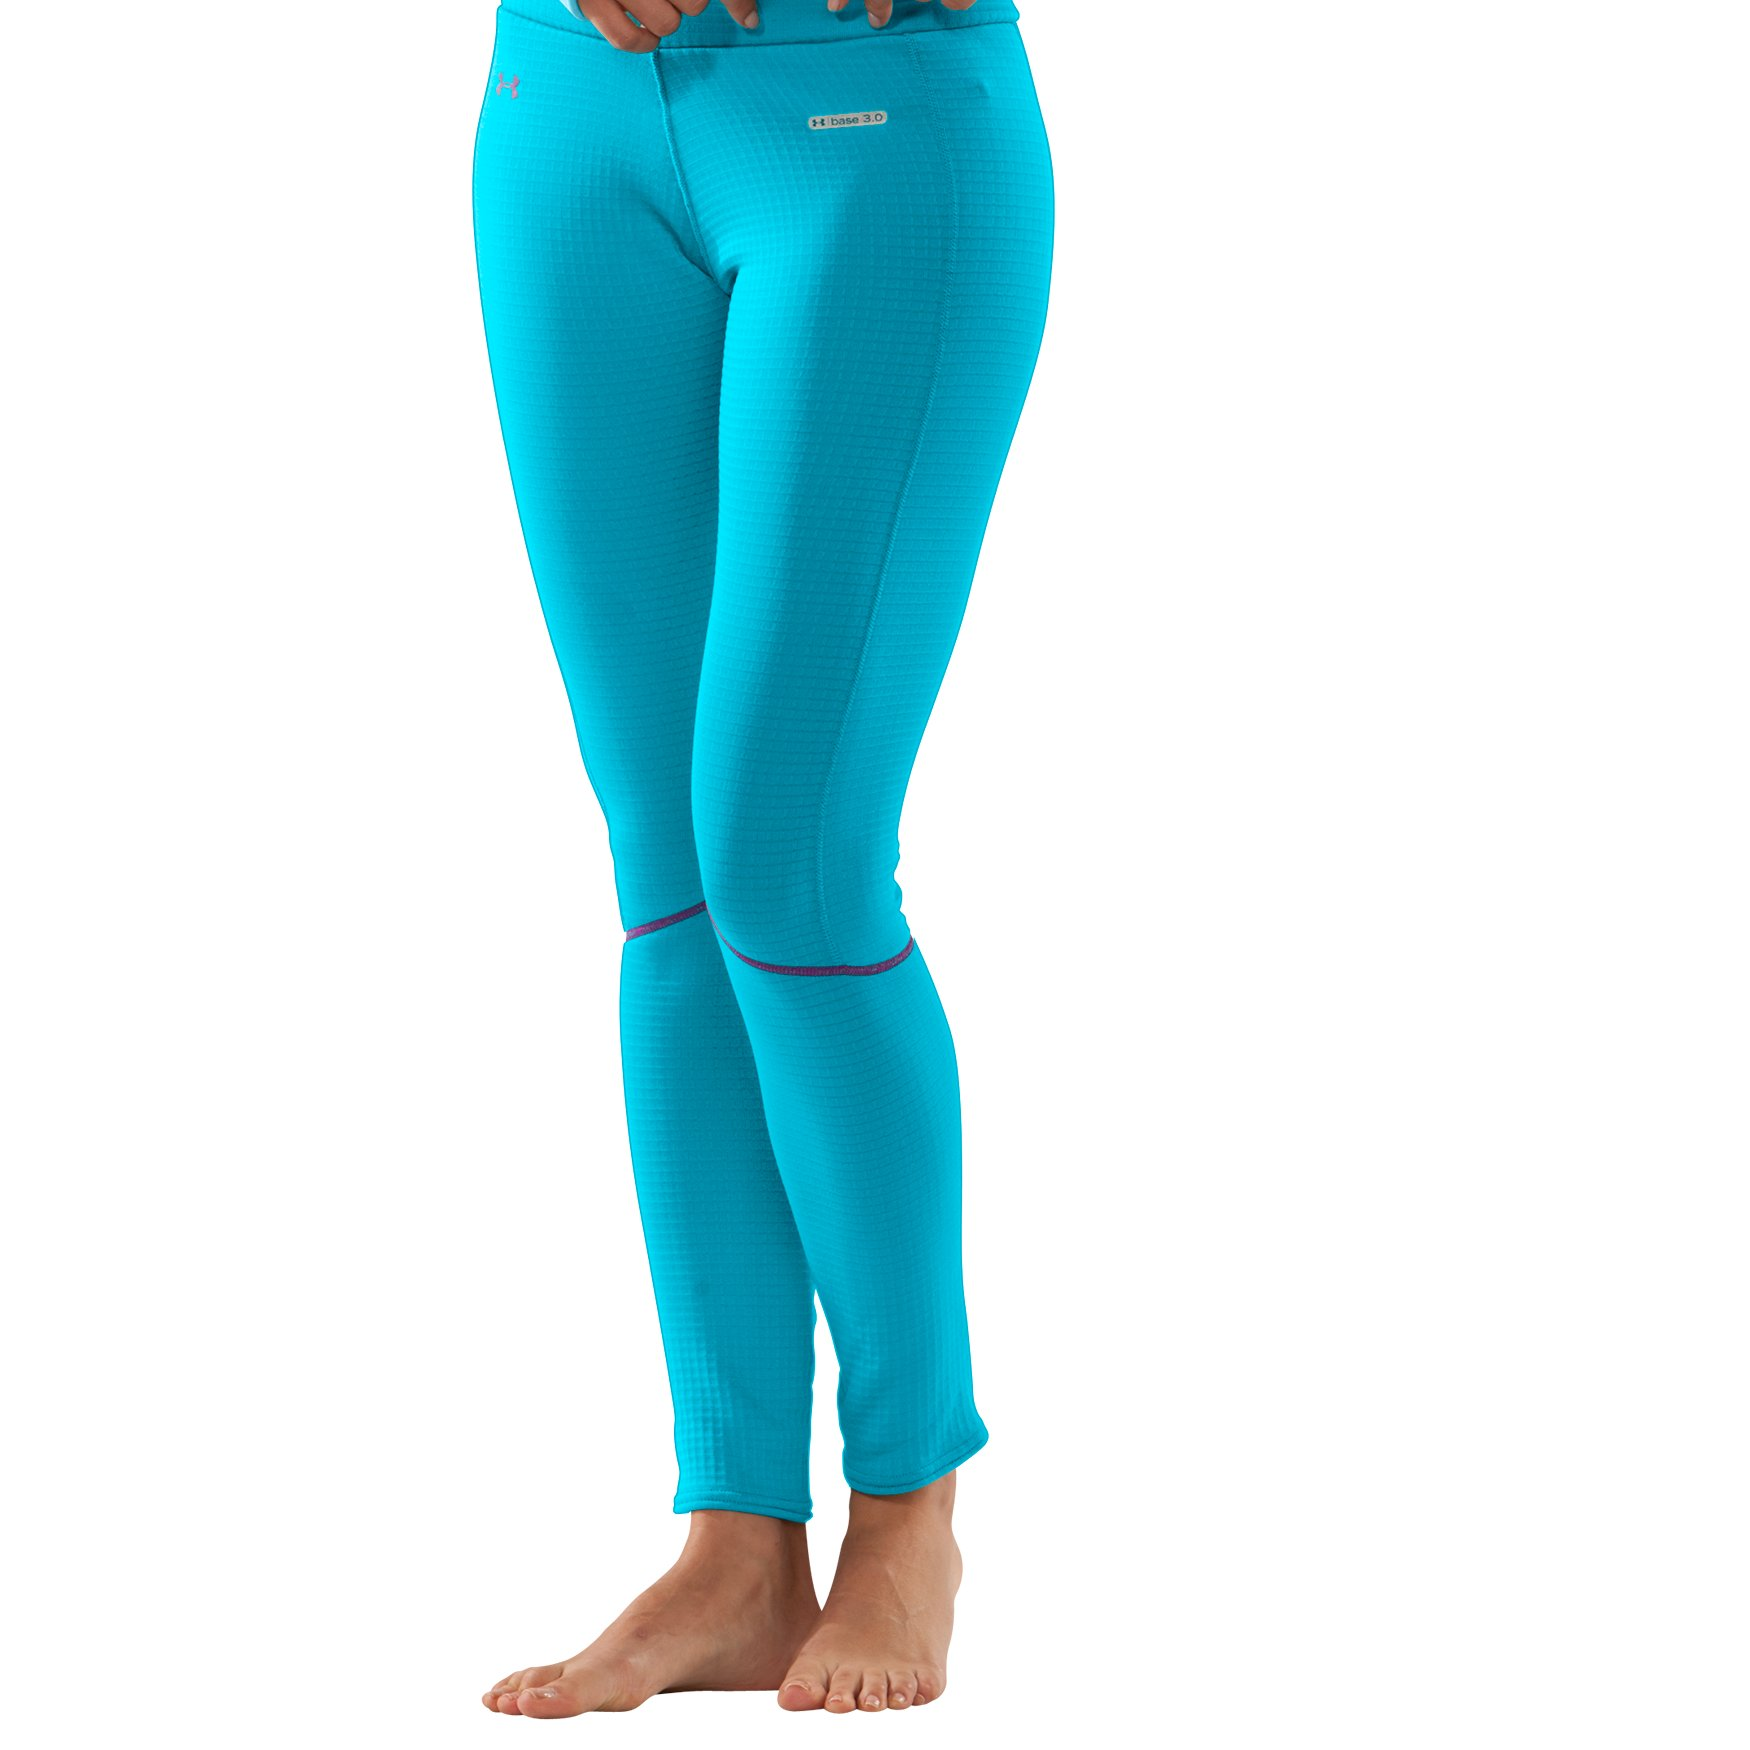 Shop for Women's Ski Pants at REI - FREE SHIPPING With $50 minimum purchase. Top quality, great selection and expert advice you can trust. % Satisfaction Guarantee.